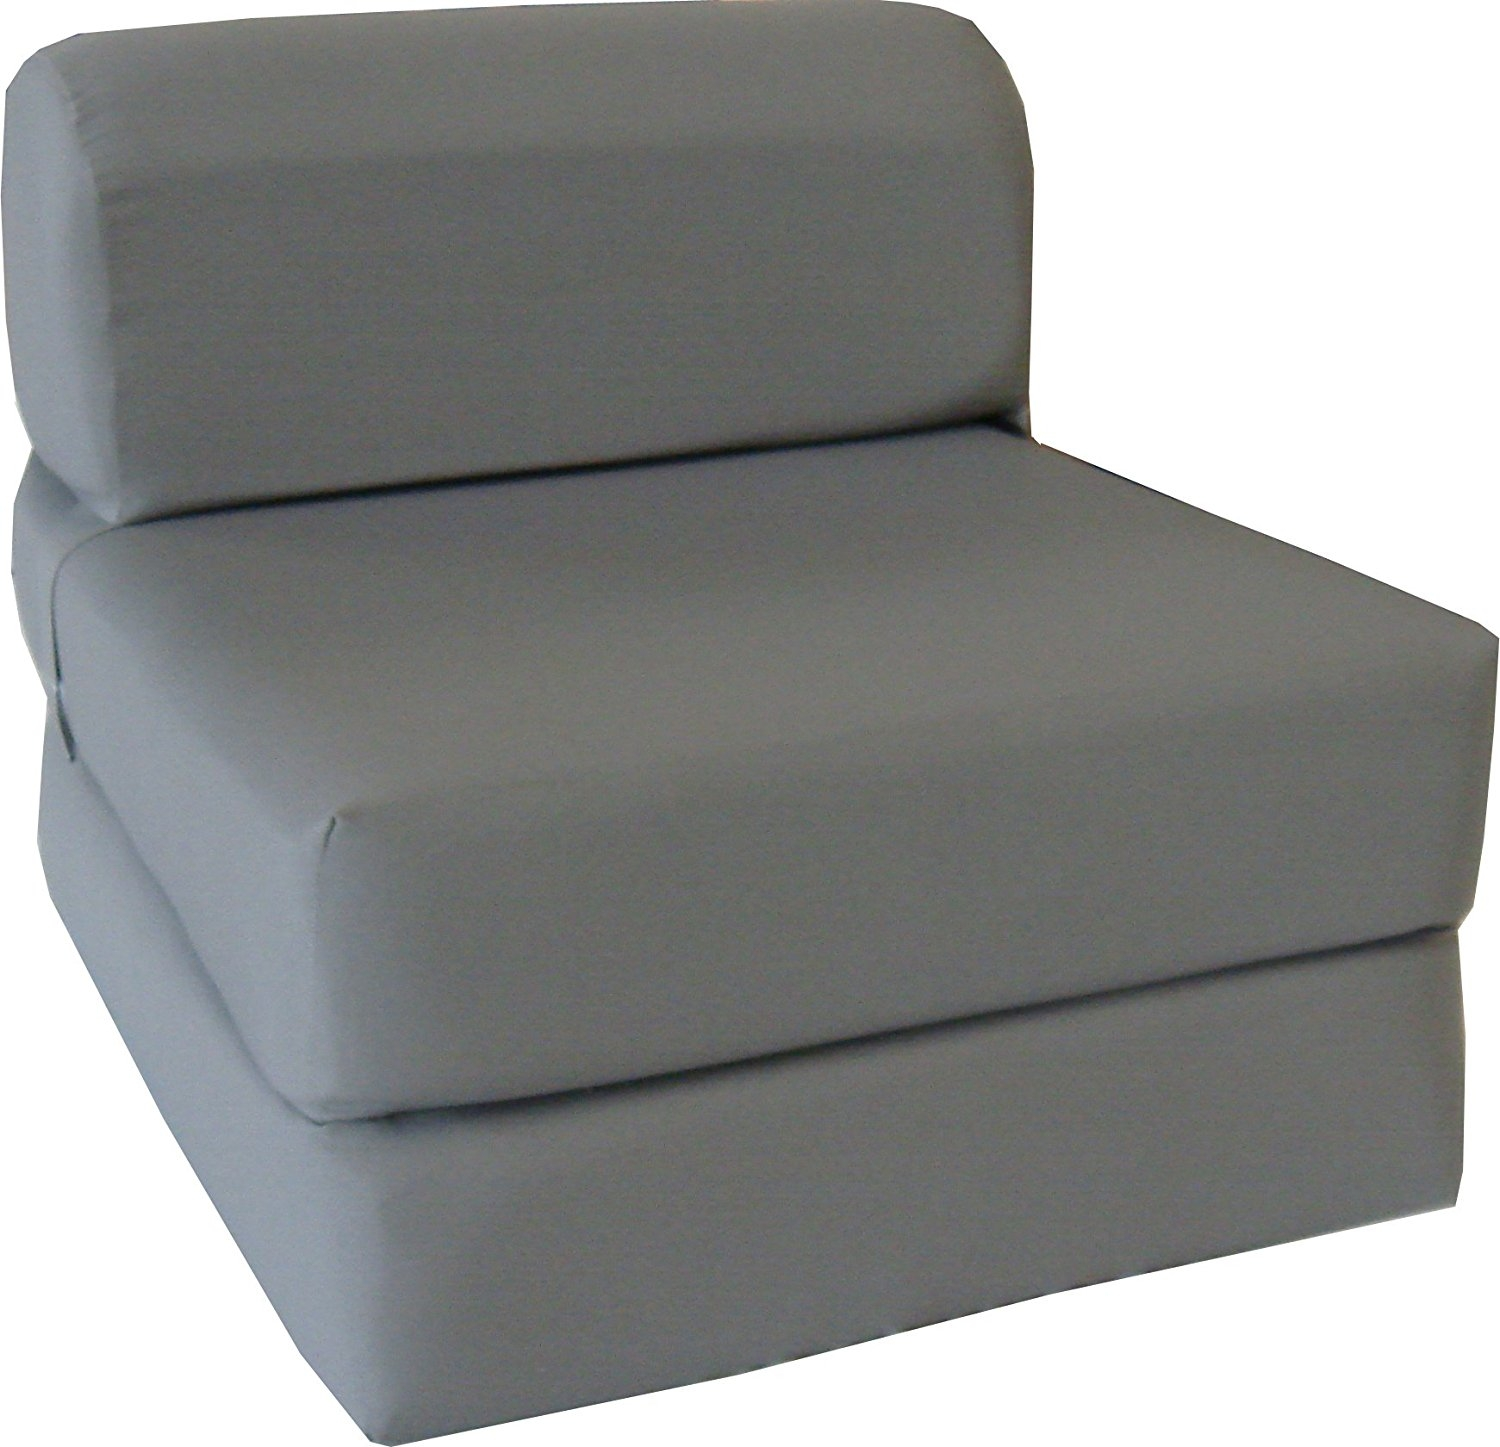 Amazon Gray Sleeper Chair Folding Foam Bed Sized 6 Thick X With Regard To Fold Up Sofa Chairs (Image 2 of 15)